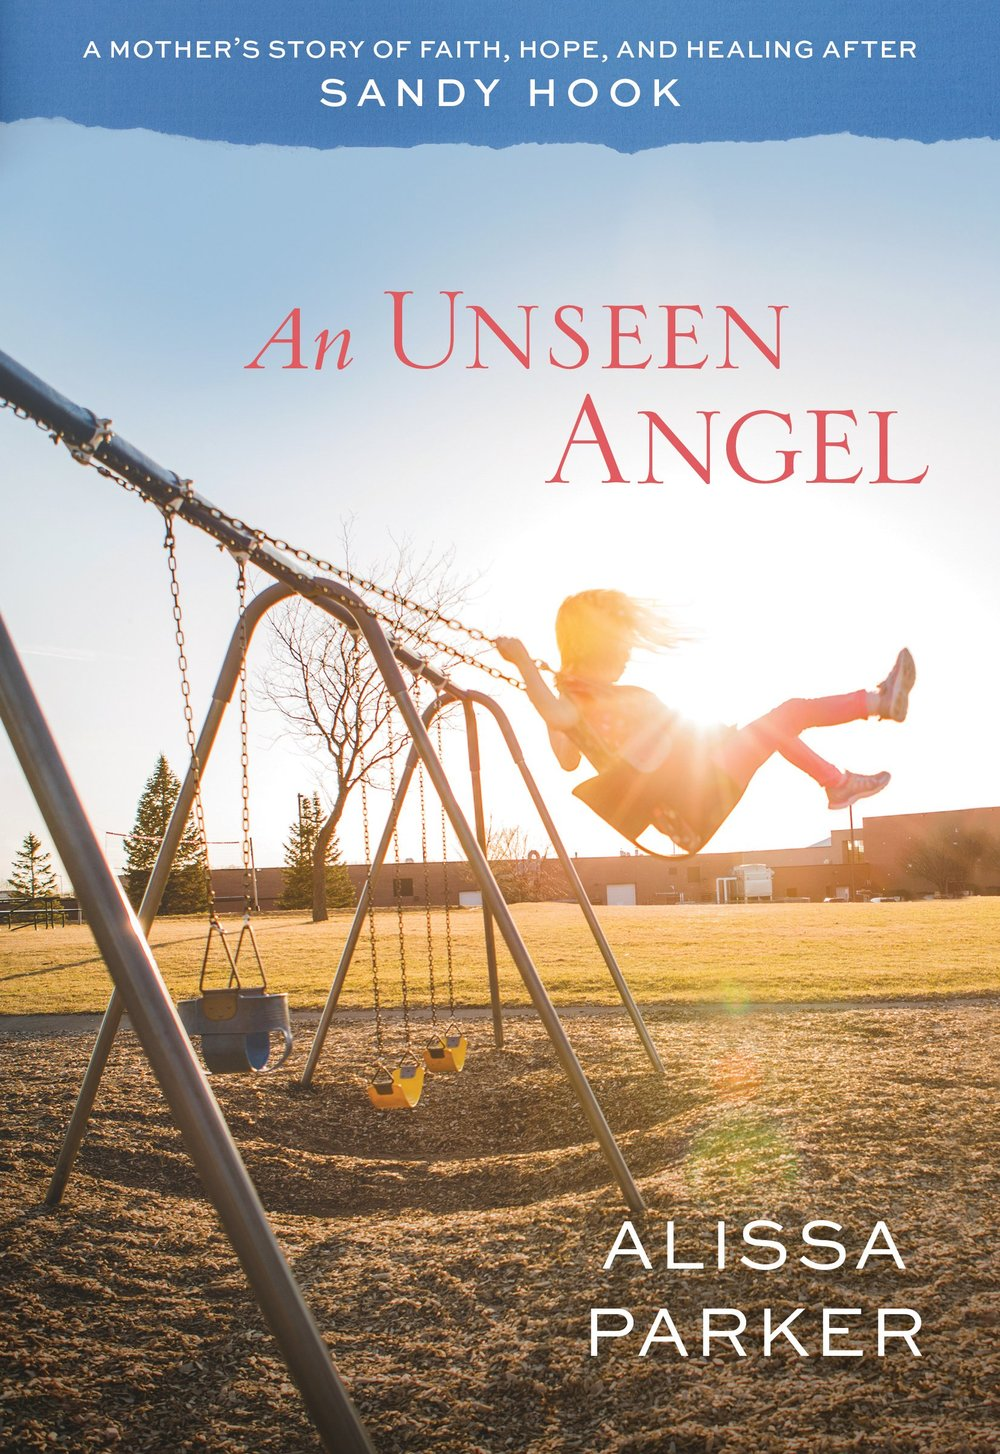 An Unseen Angel by Alissa Parker